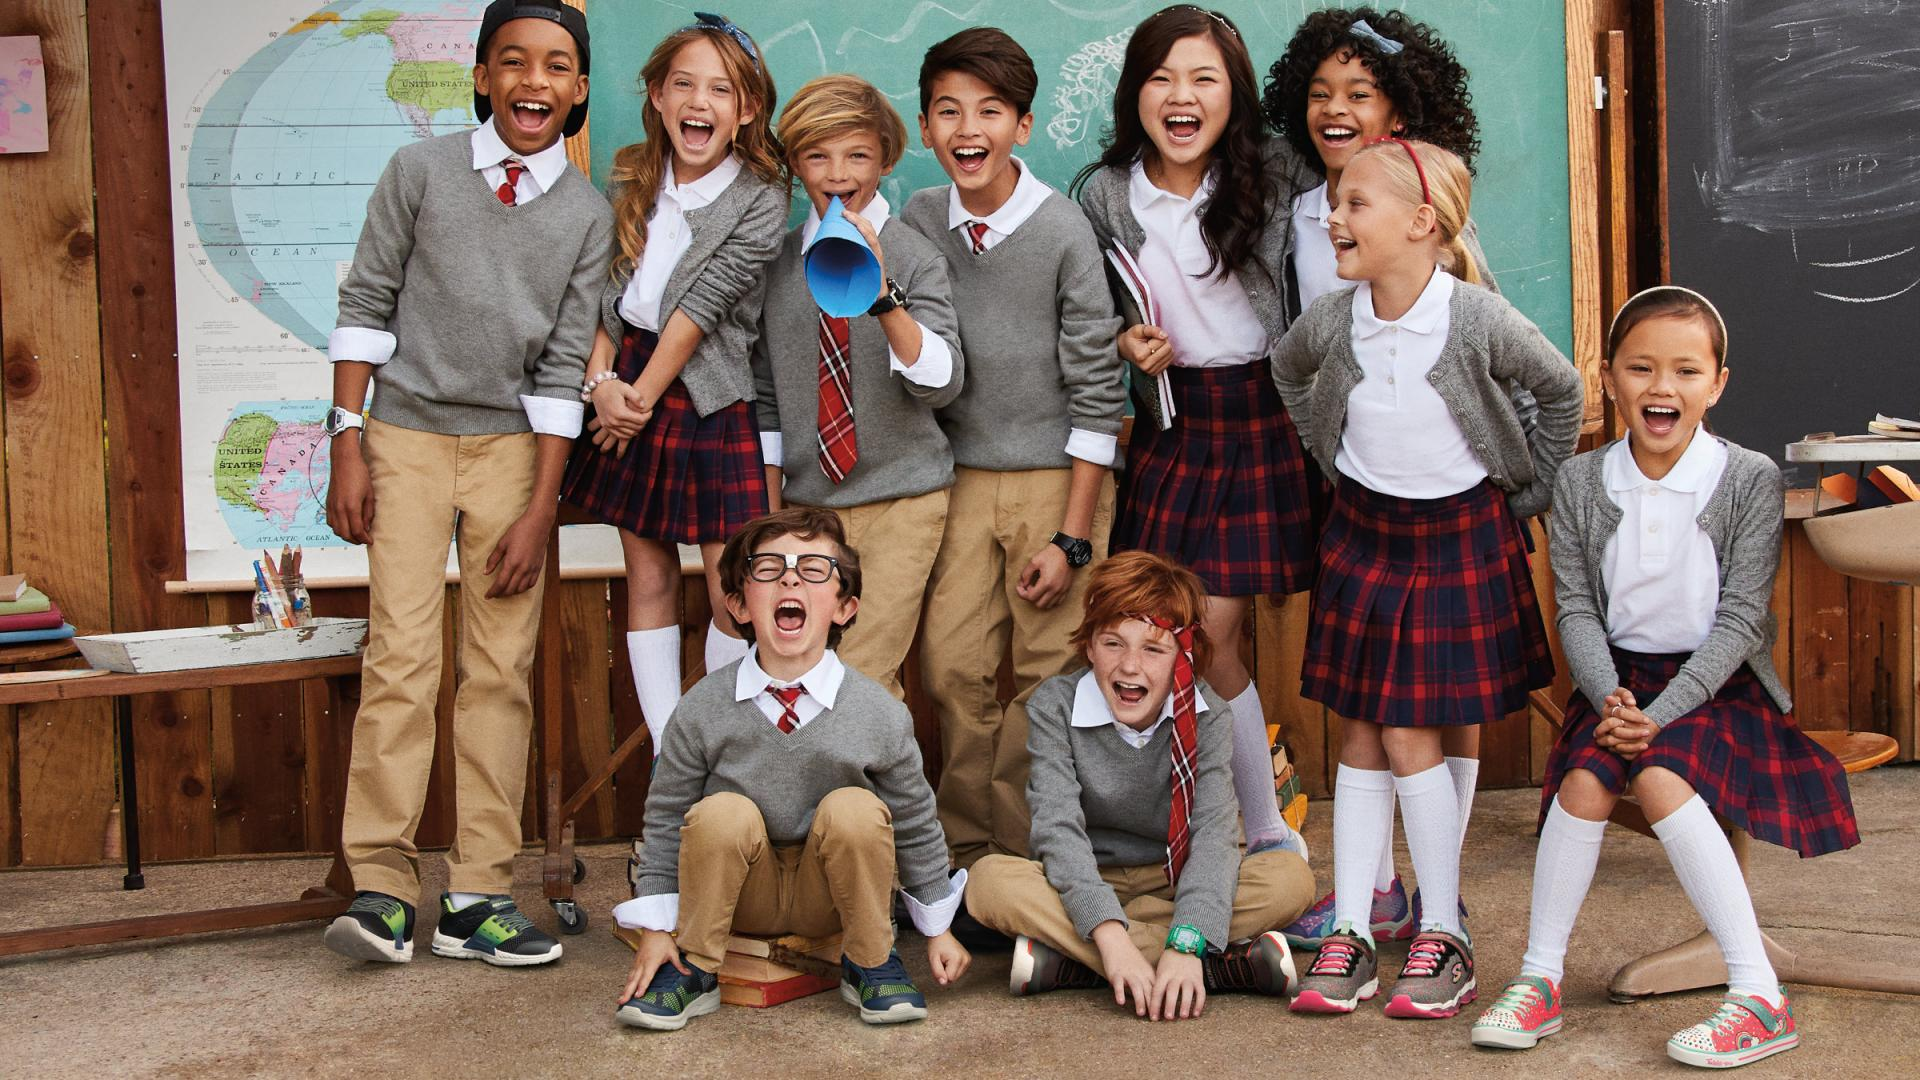 Group of kids in back to school uniforms